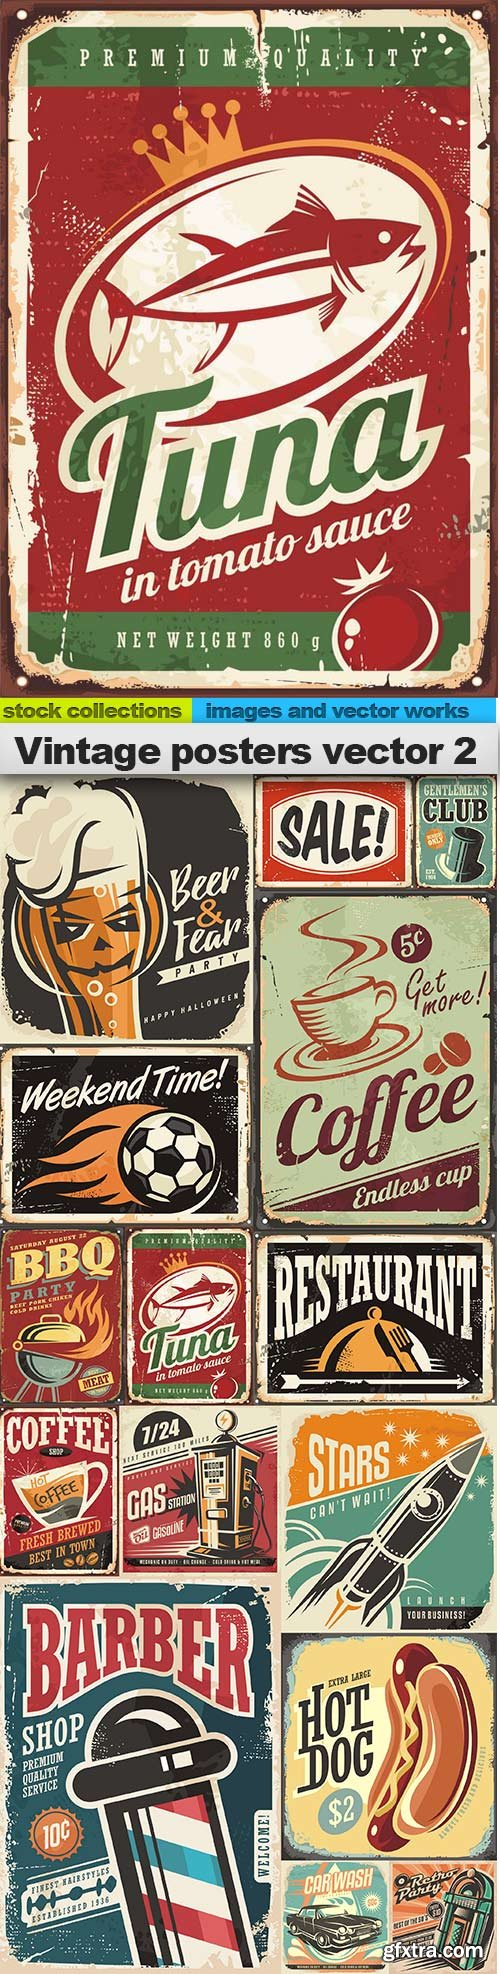 Vintage posters vector 2, 15 x EPS